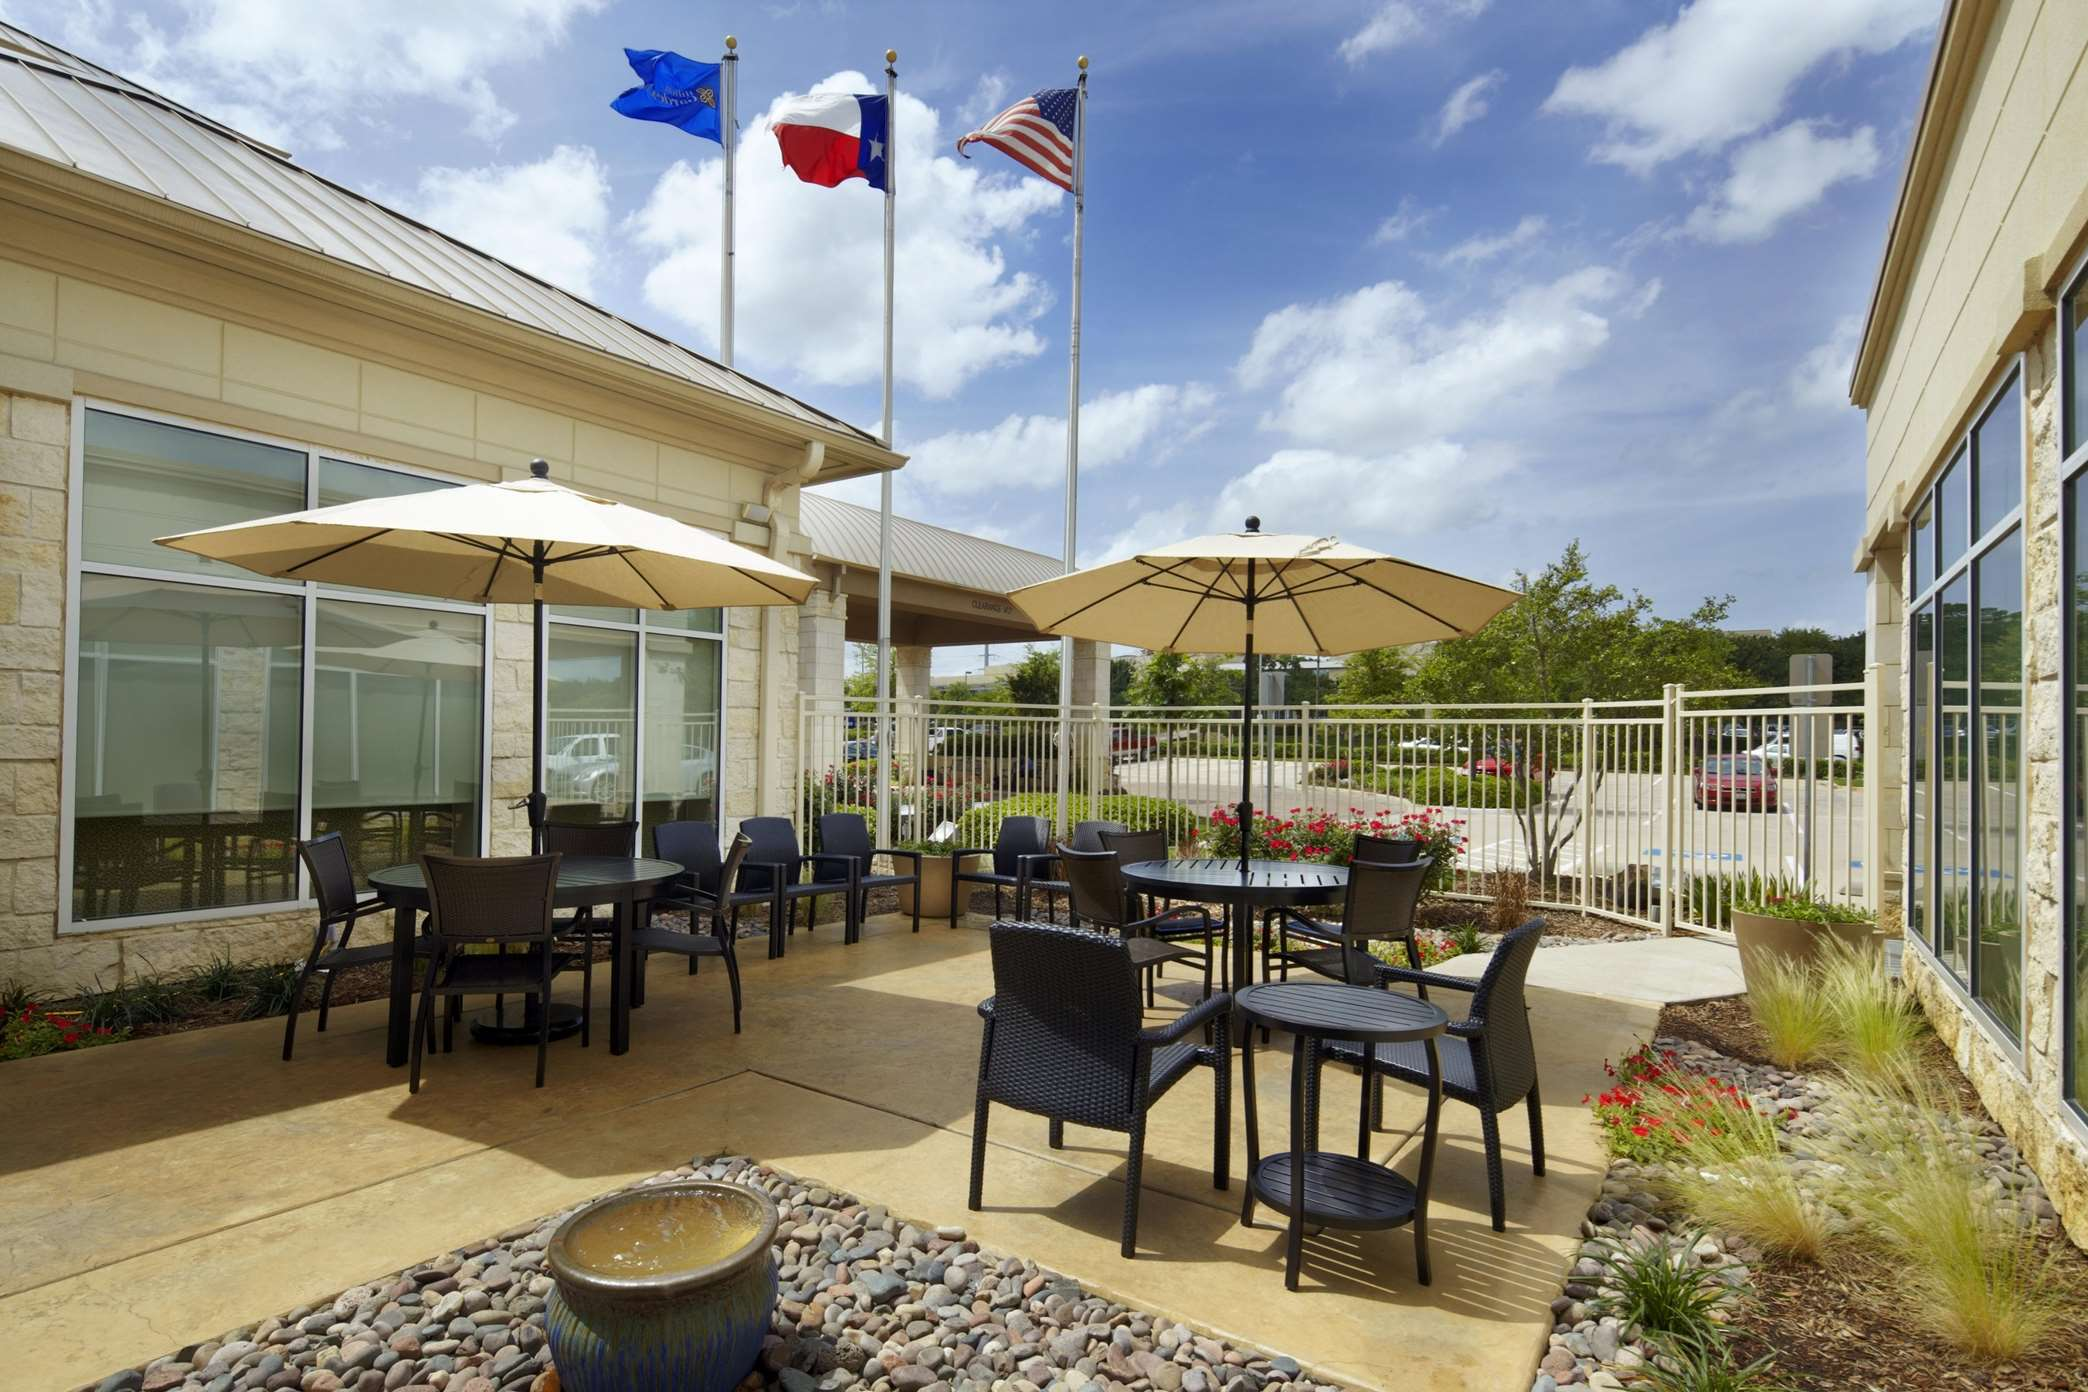 Hilton Garden Inn Dallas/Arlington image 33